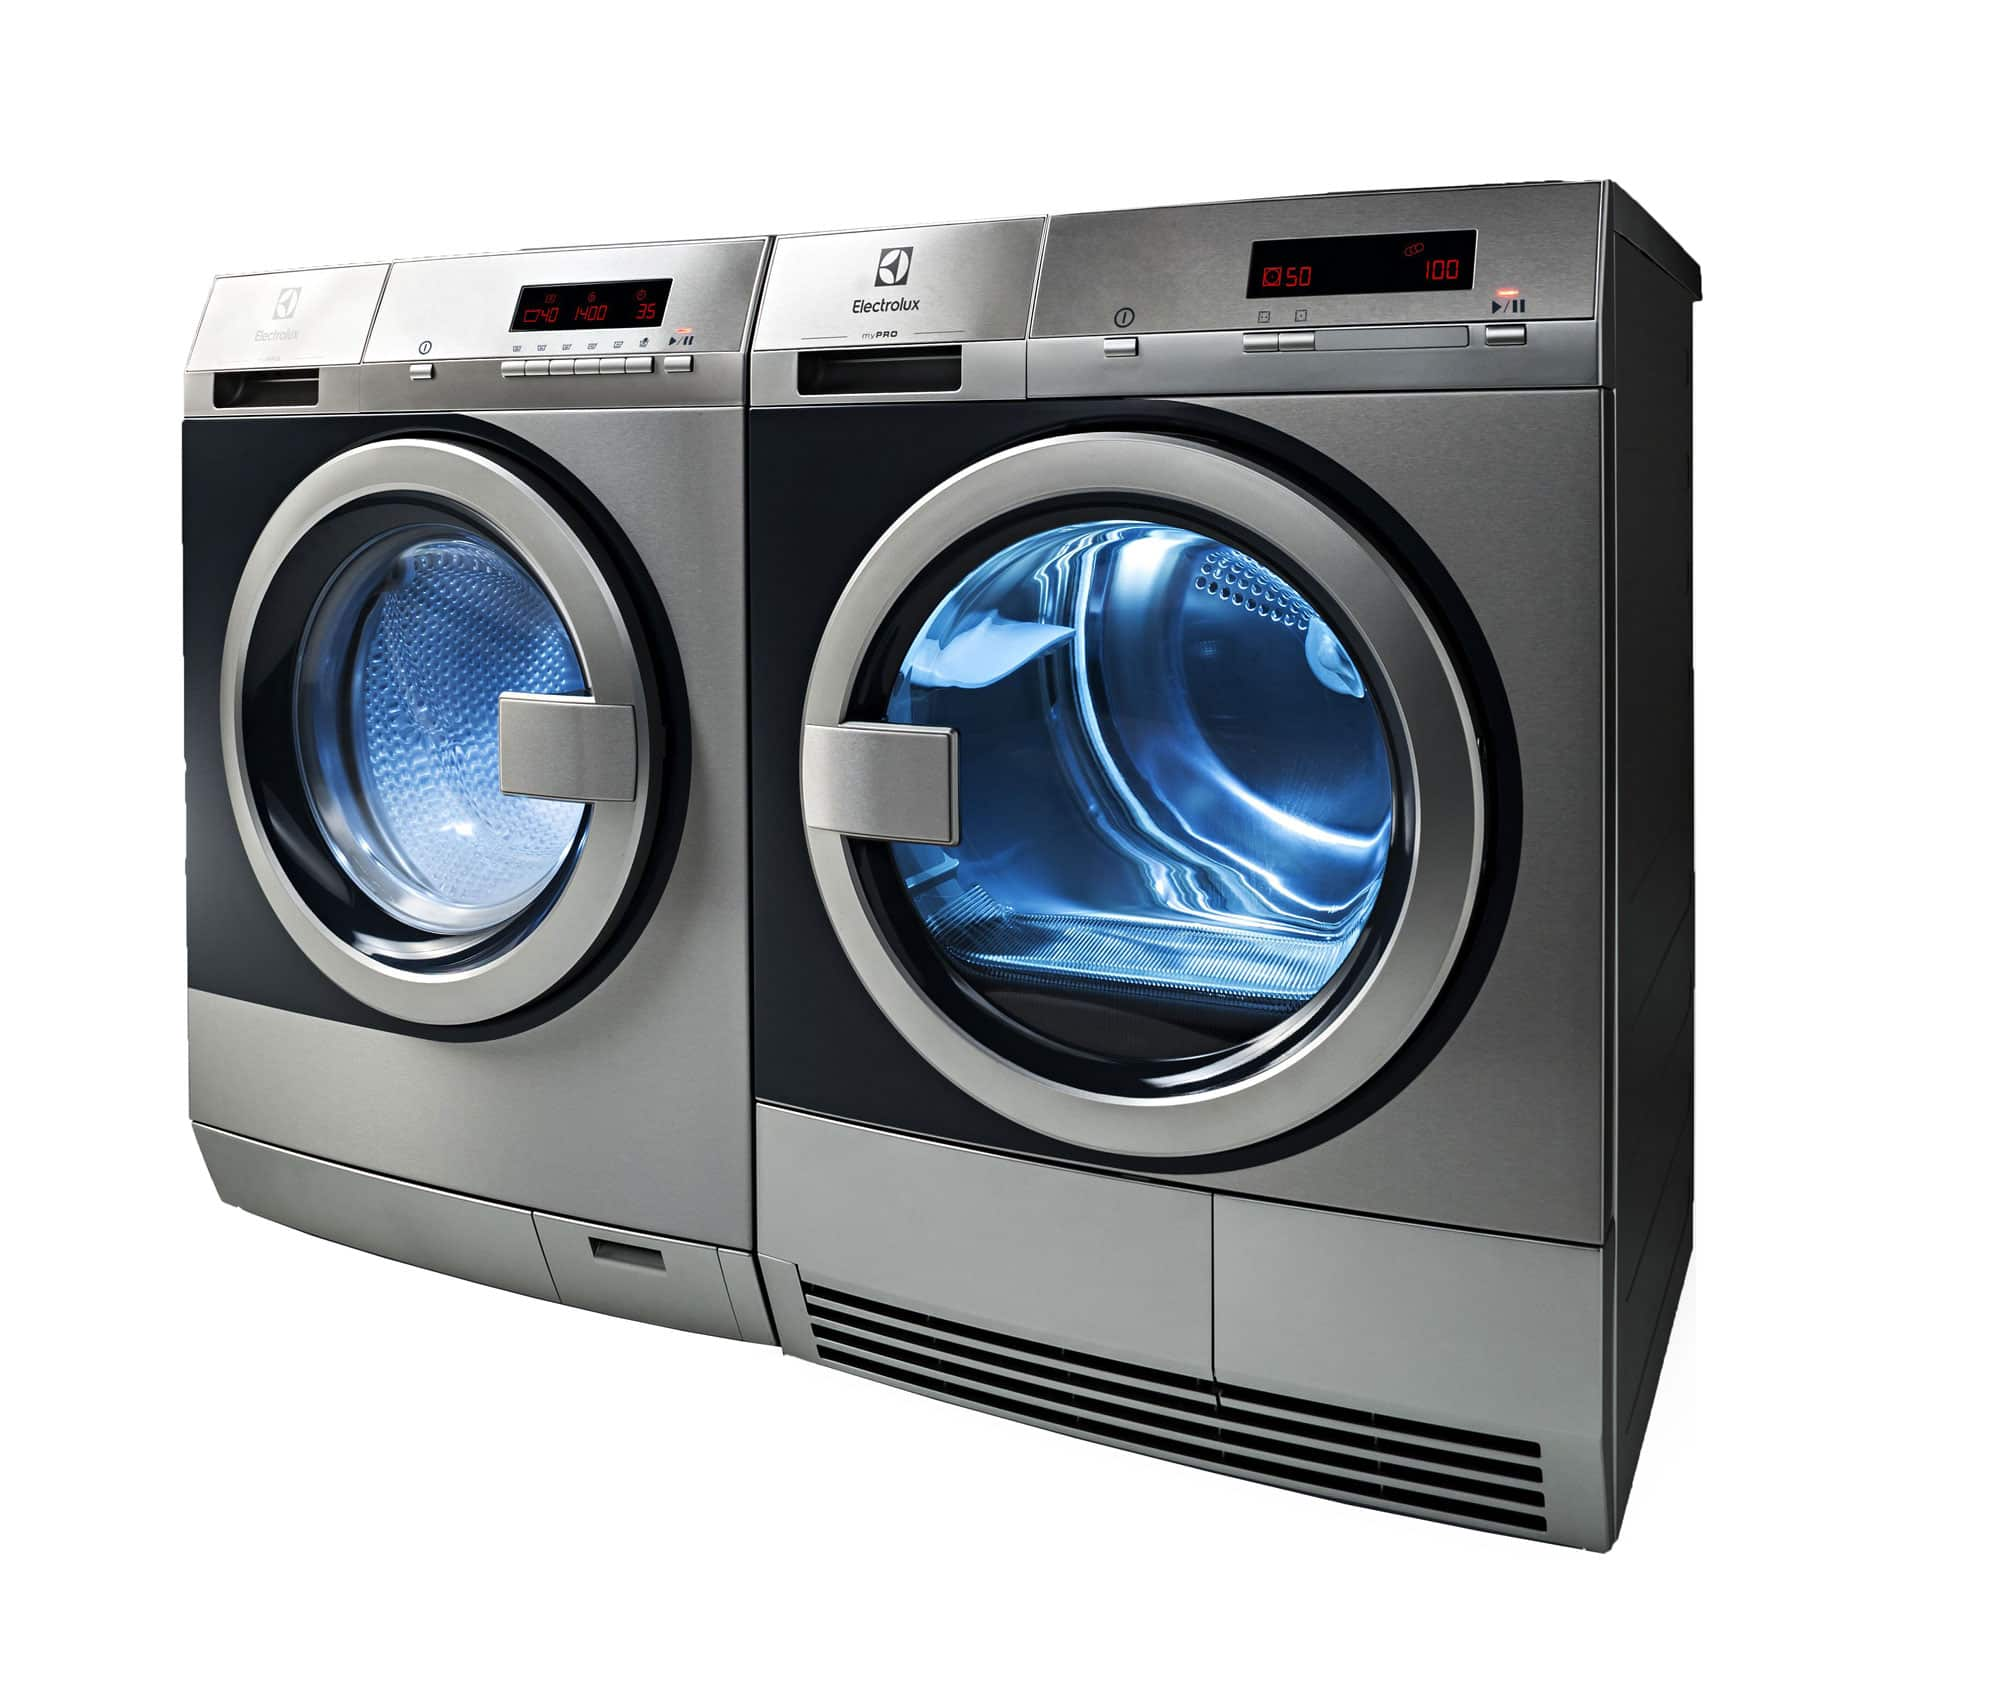 myPROzip washer and dryer